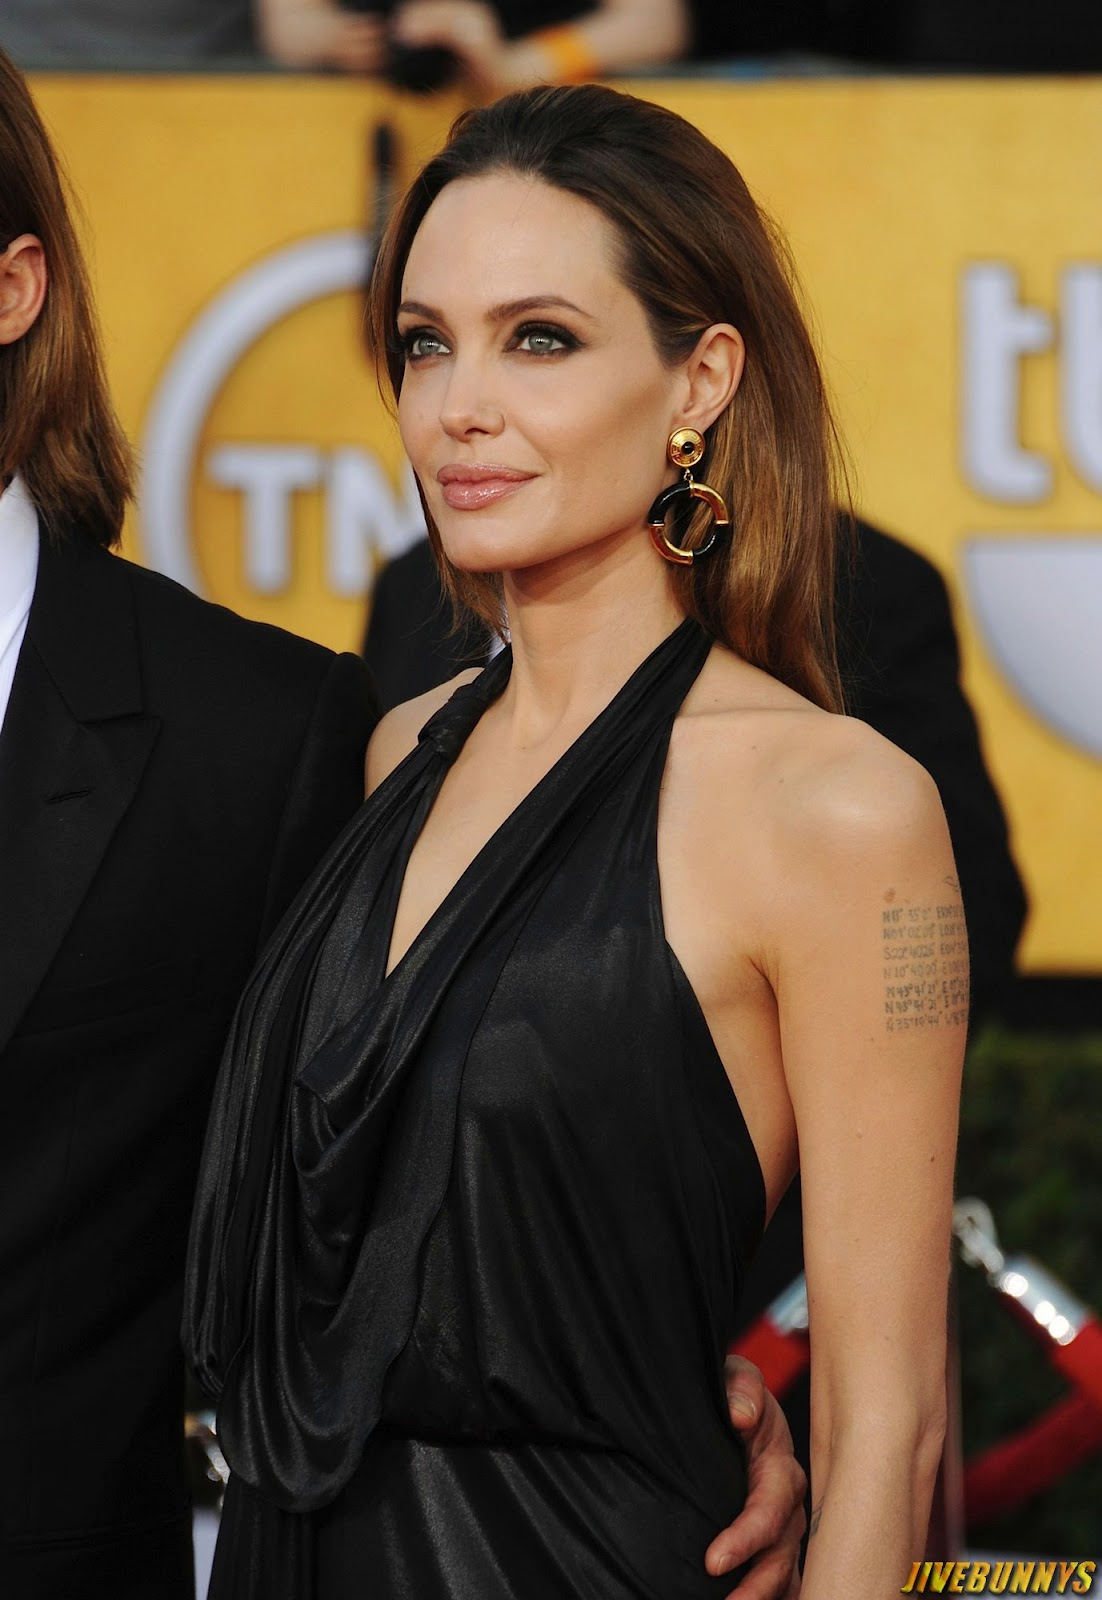 angelina jolie actress 4 Angelina jolie says there was a heaviness in her relationship with brad pitt the actress gets candid in an interview about working with her ex.